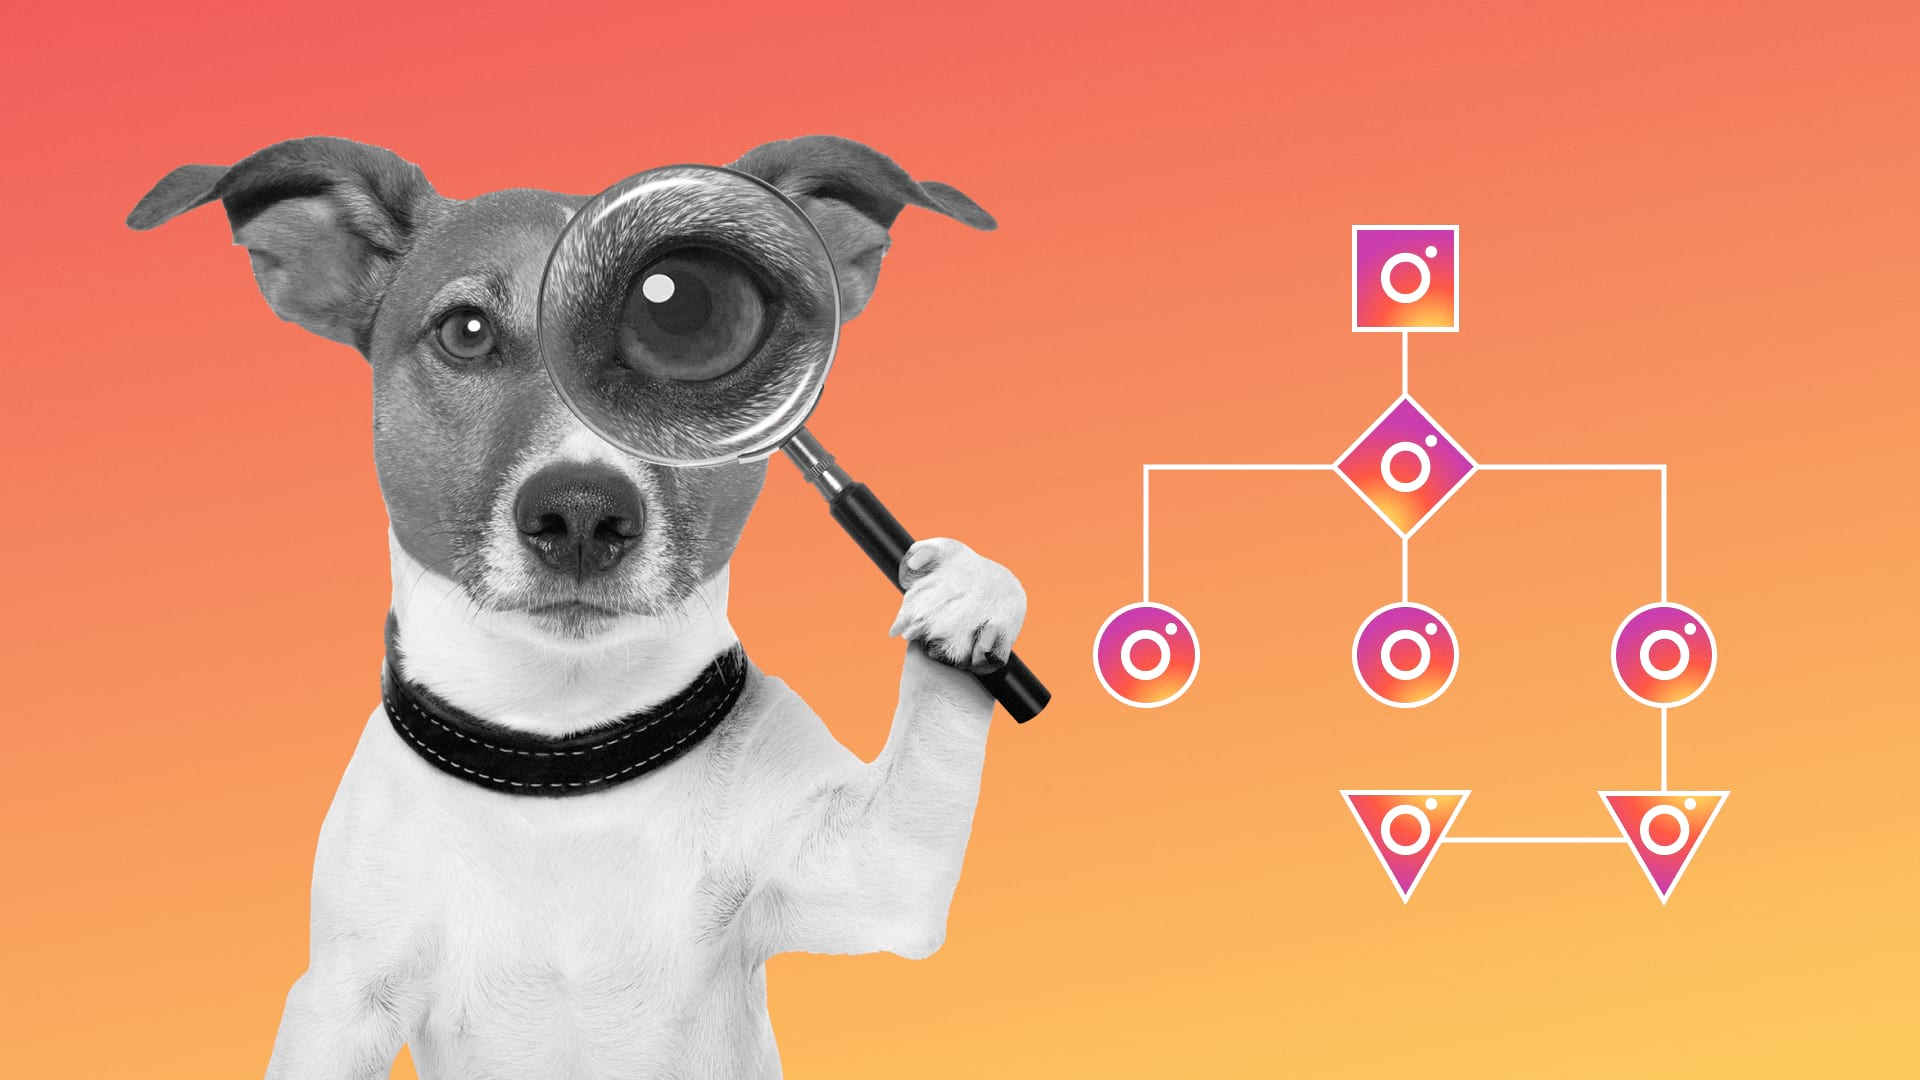 The algorithm for finding clients on Instagram